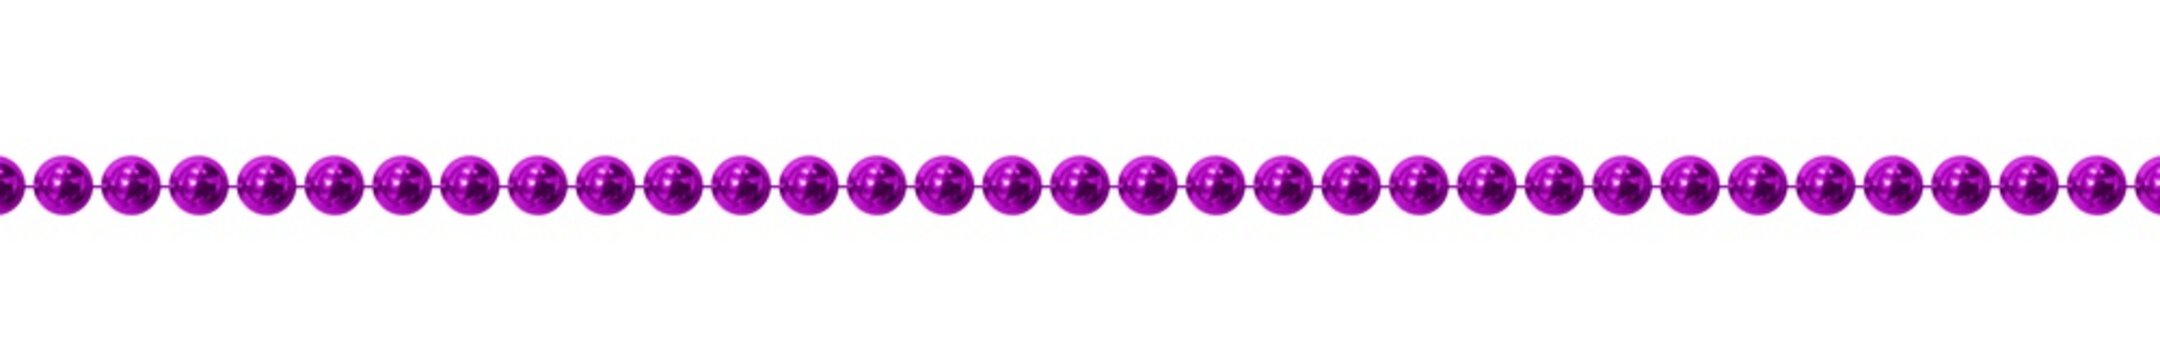 Vector realistic isolated purple beads for Mardi Gras for decoration and covering on the white background. Concept of Happy Mardi Gras.